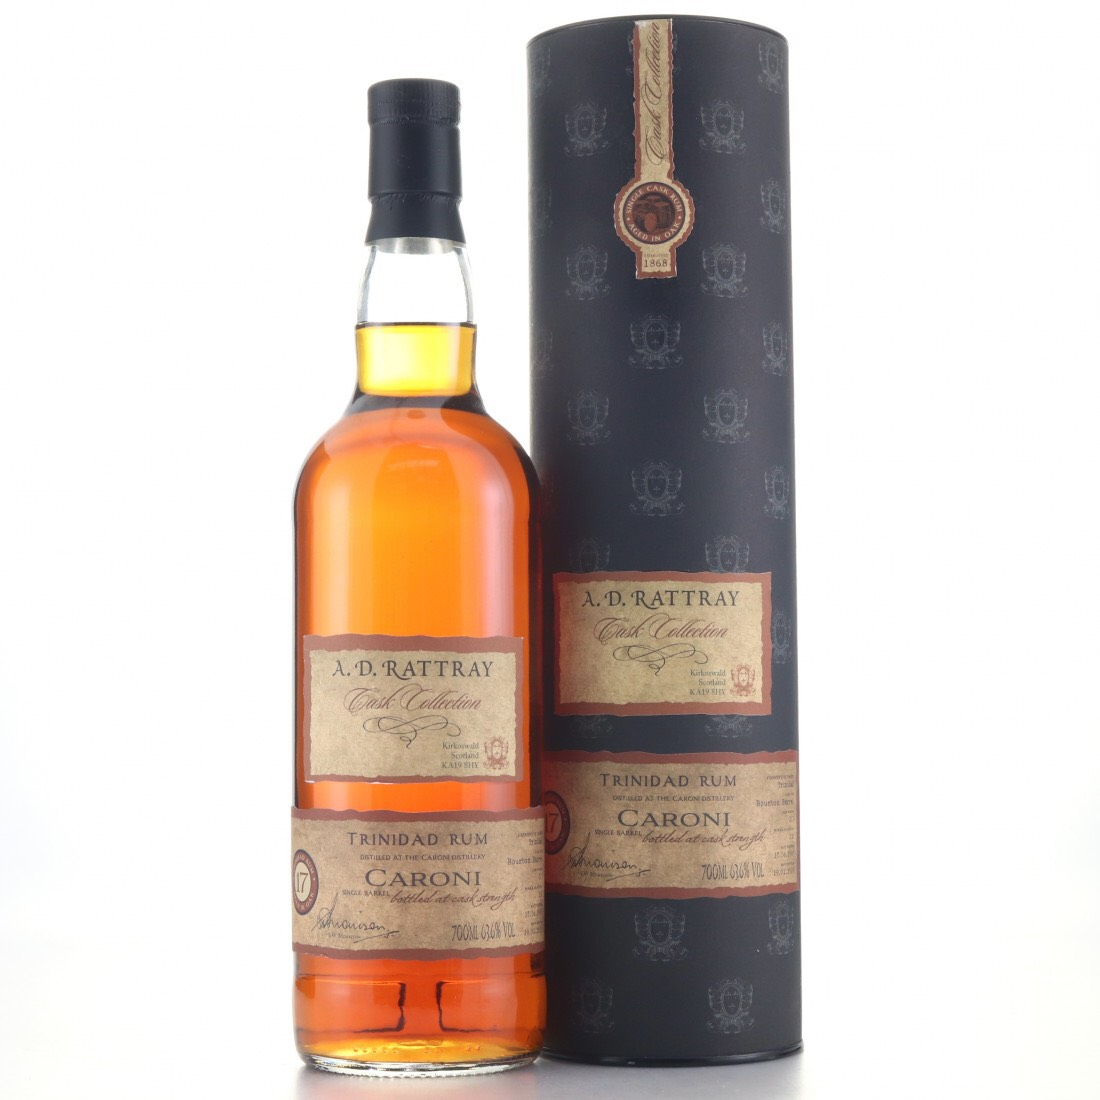 Bottle image of Cask Collection HTR